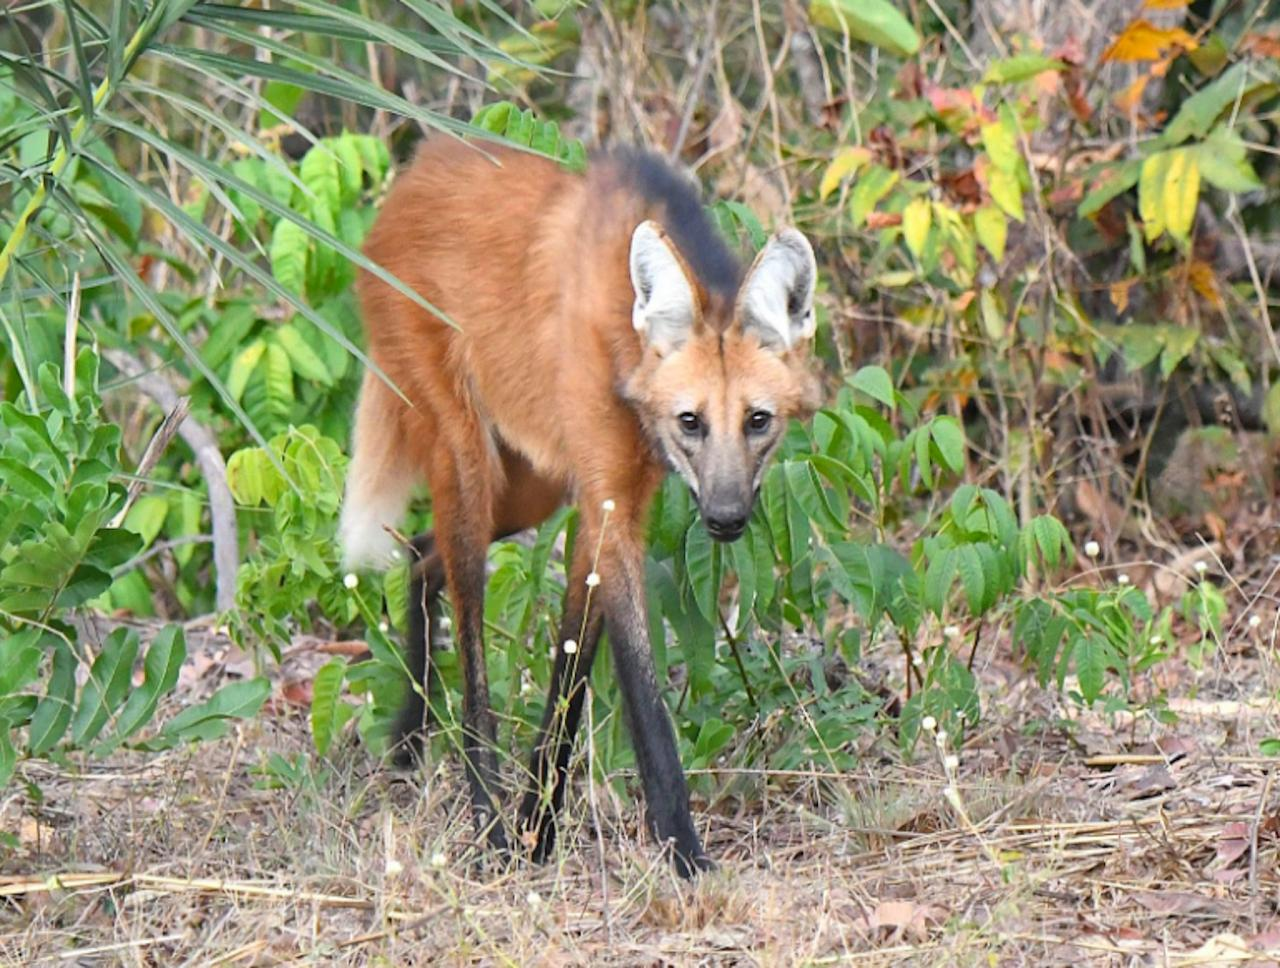 Maned Wolf, Brazil, Pantanal, Brazil Wildlife Tour, Pantanal Wildlife Tour, Brazil Nature Tour, Pantanal Nature Tour, Naturalist Journeys